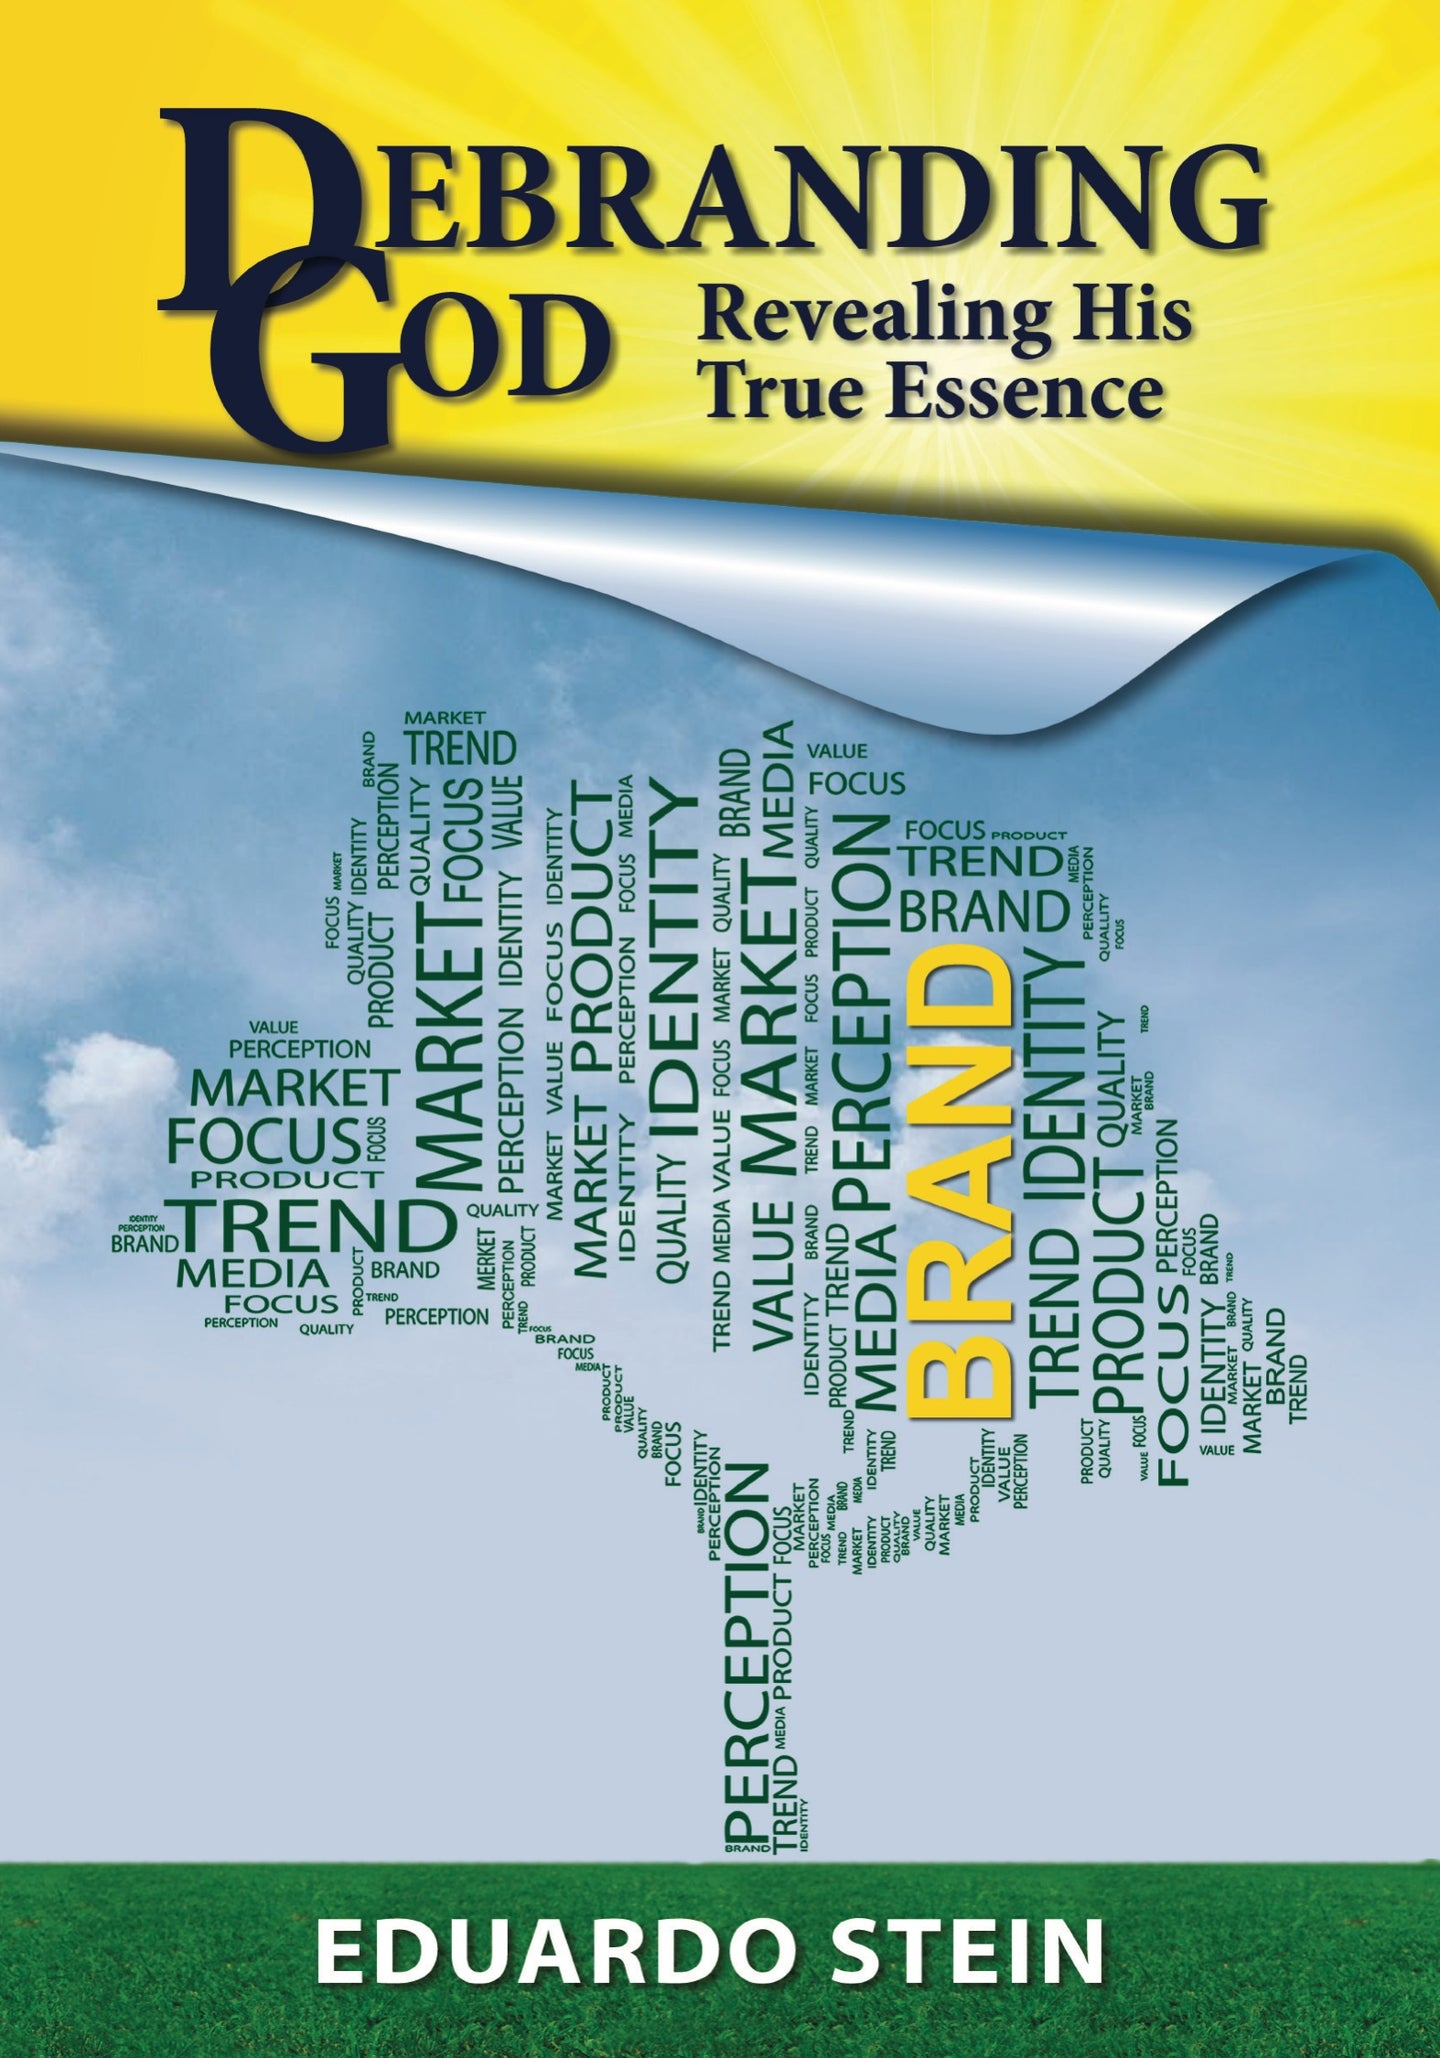 Debranding God: Revealing His True Essence by Eduardo Stein